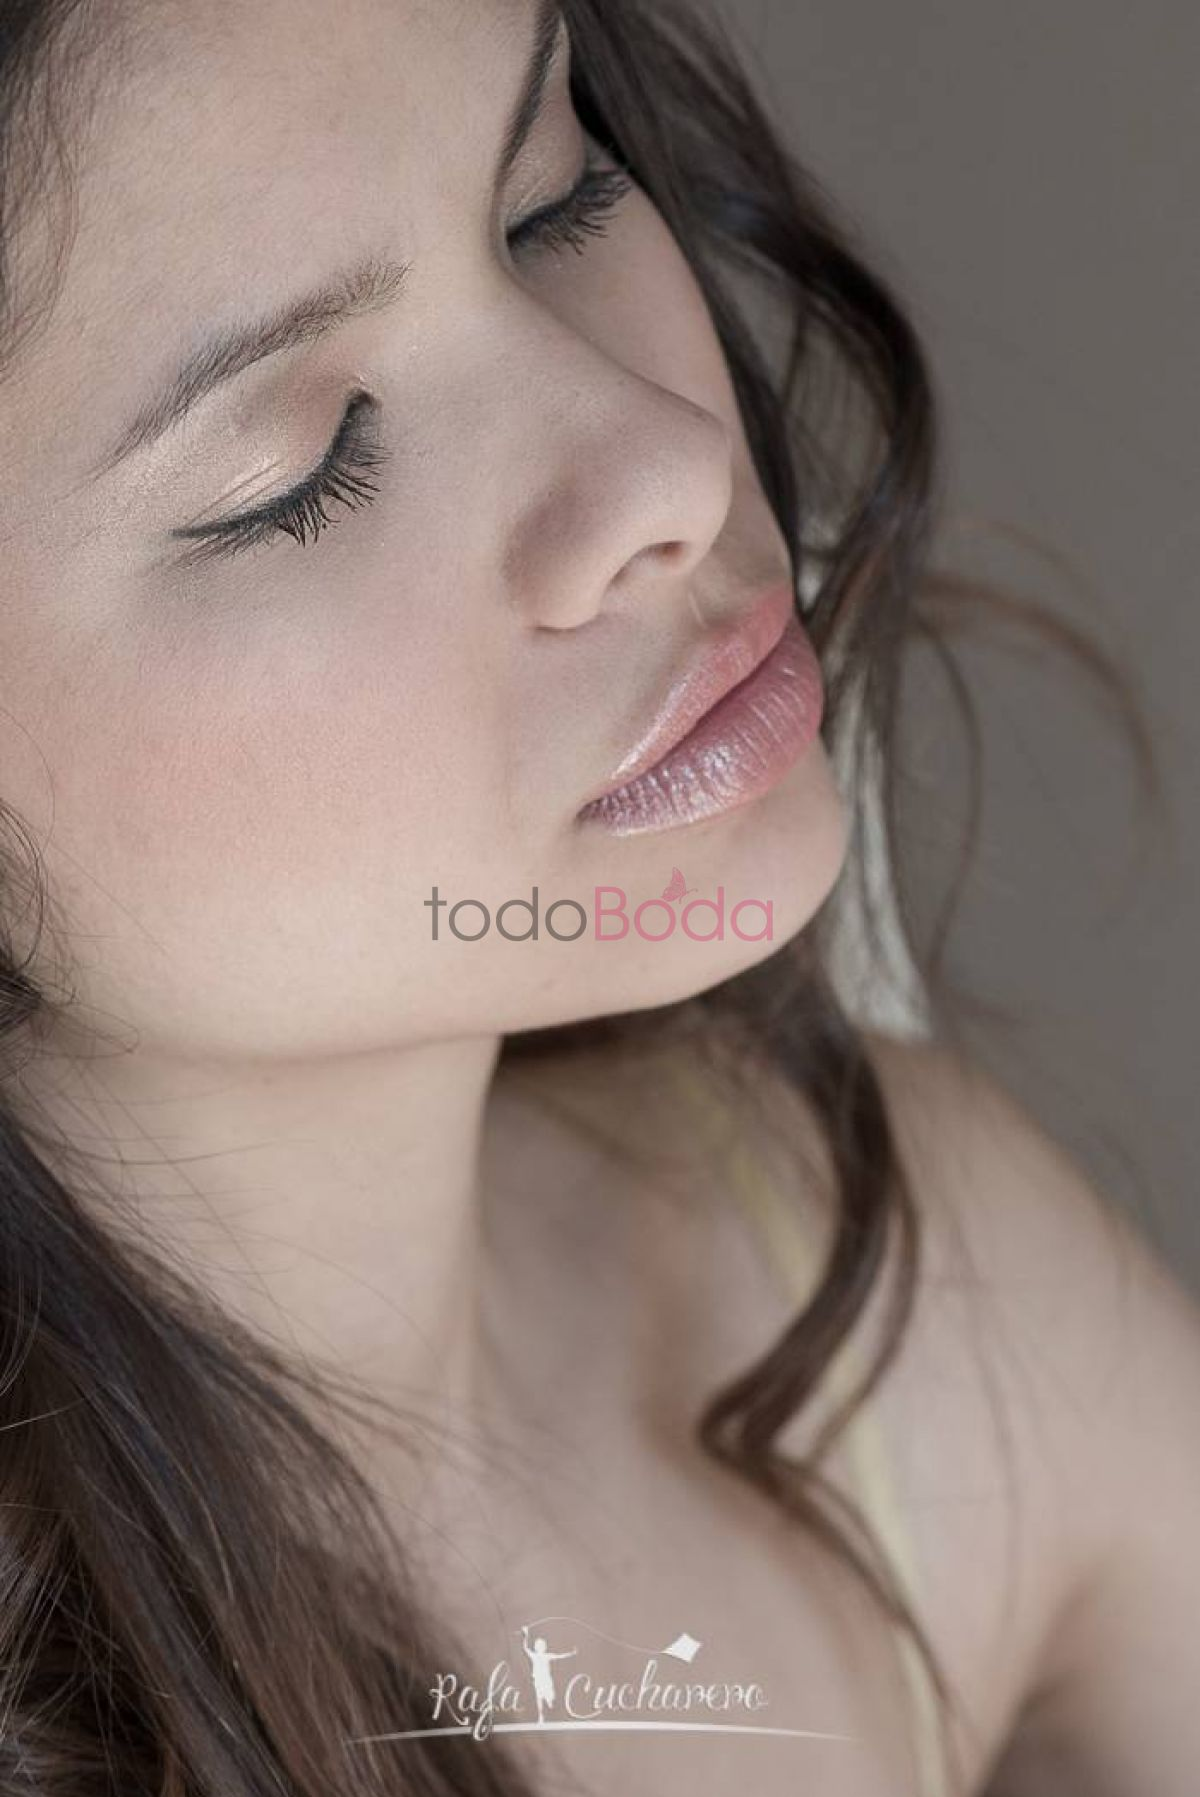 Tu boda en Make' Up Unaiyi 2